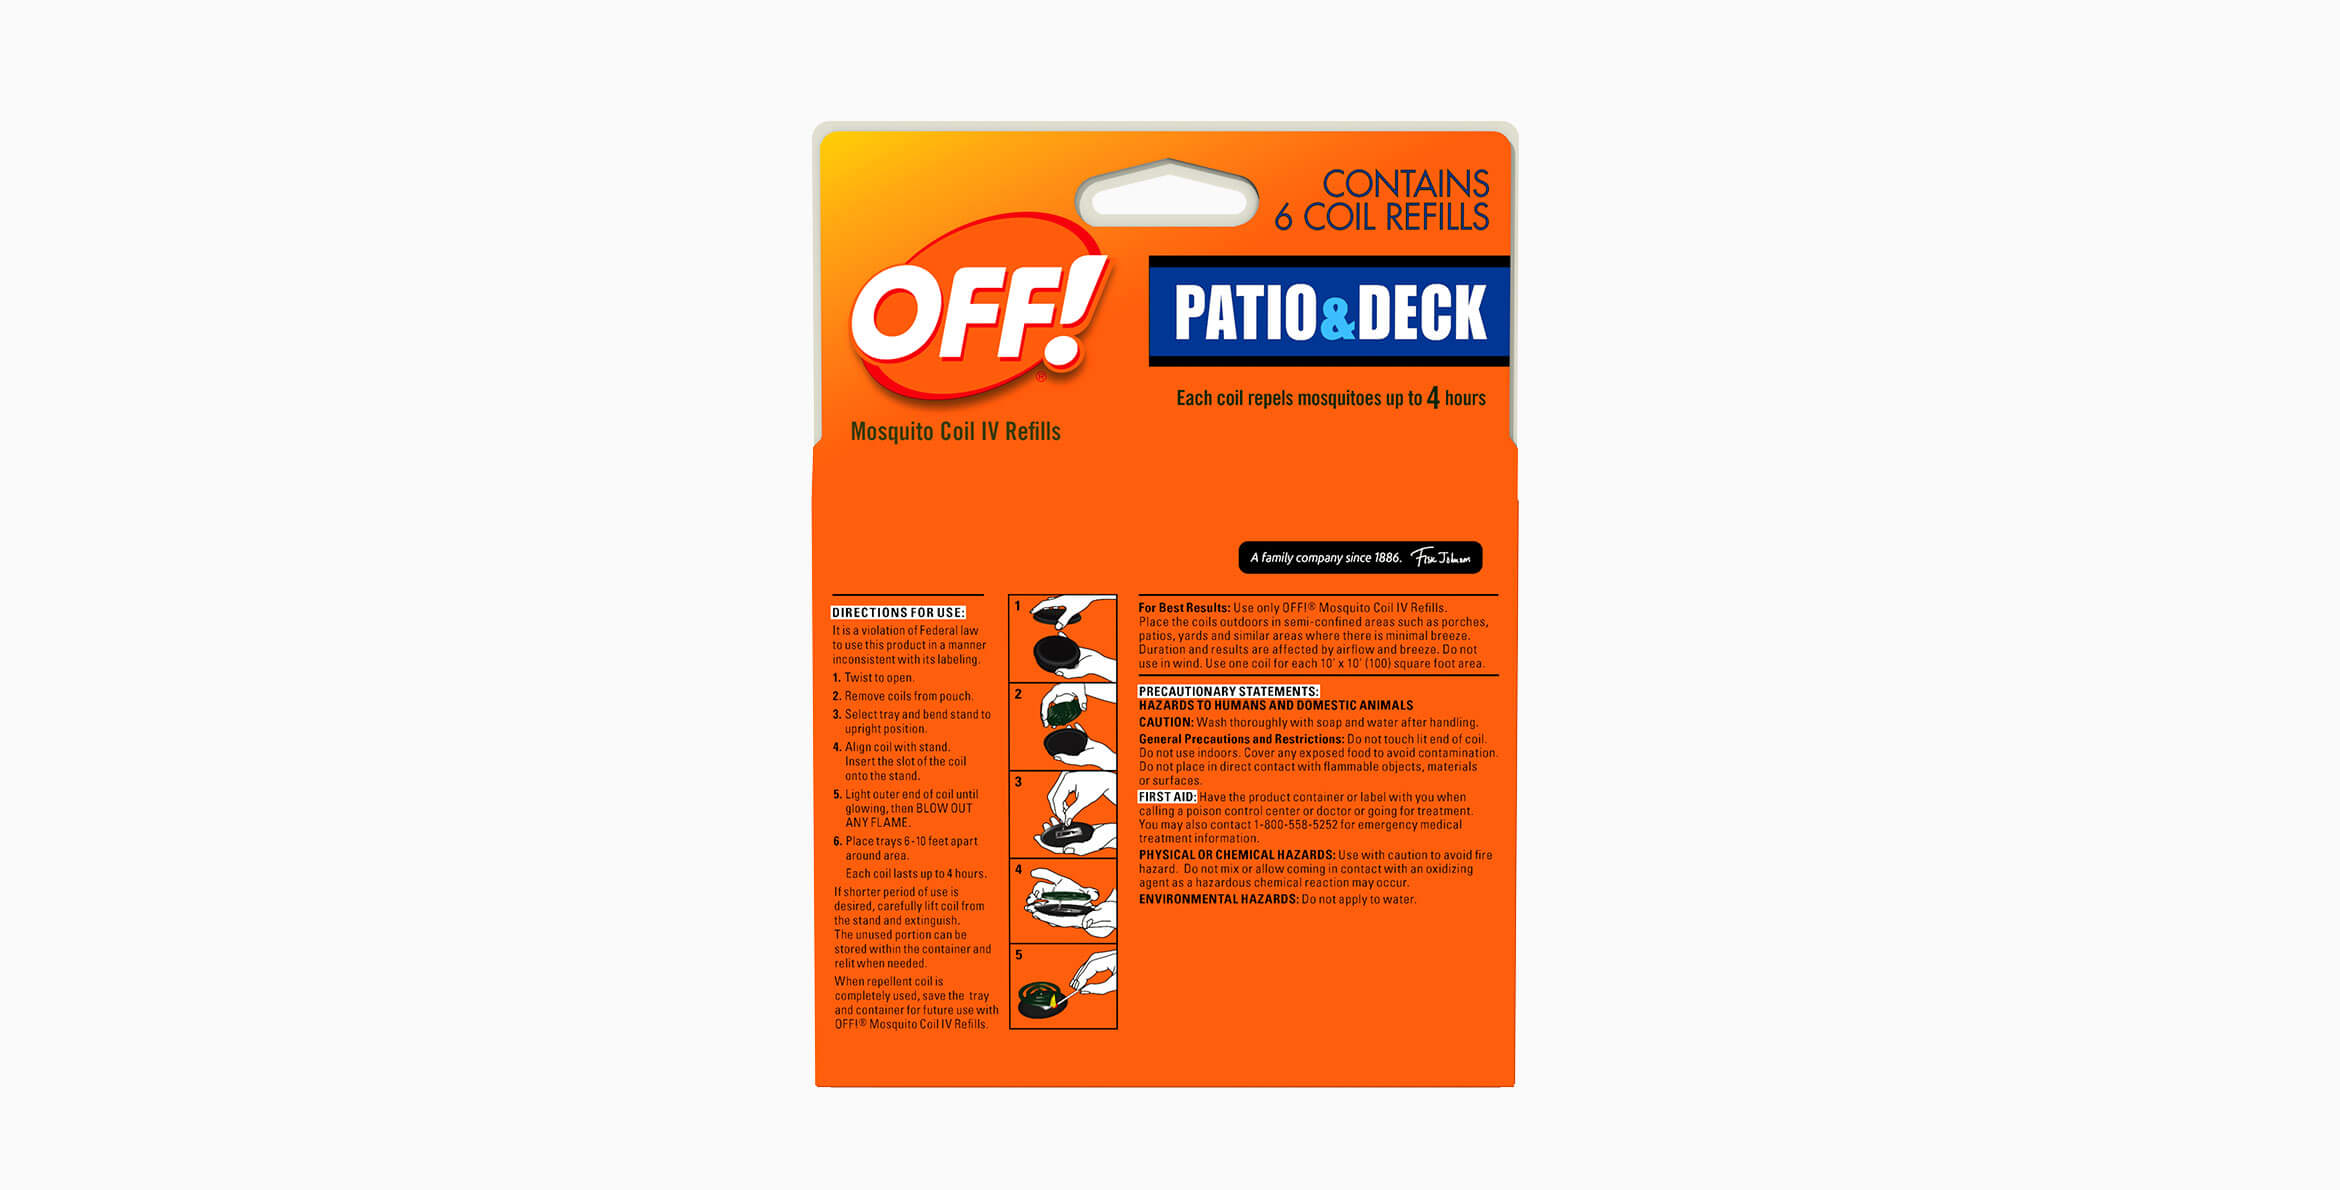 OFF!® MosquitoCoil IV Refills